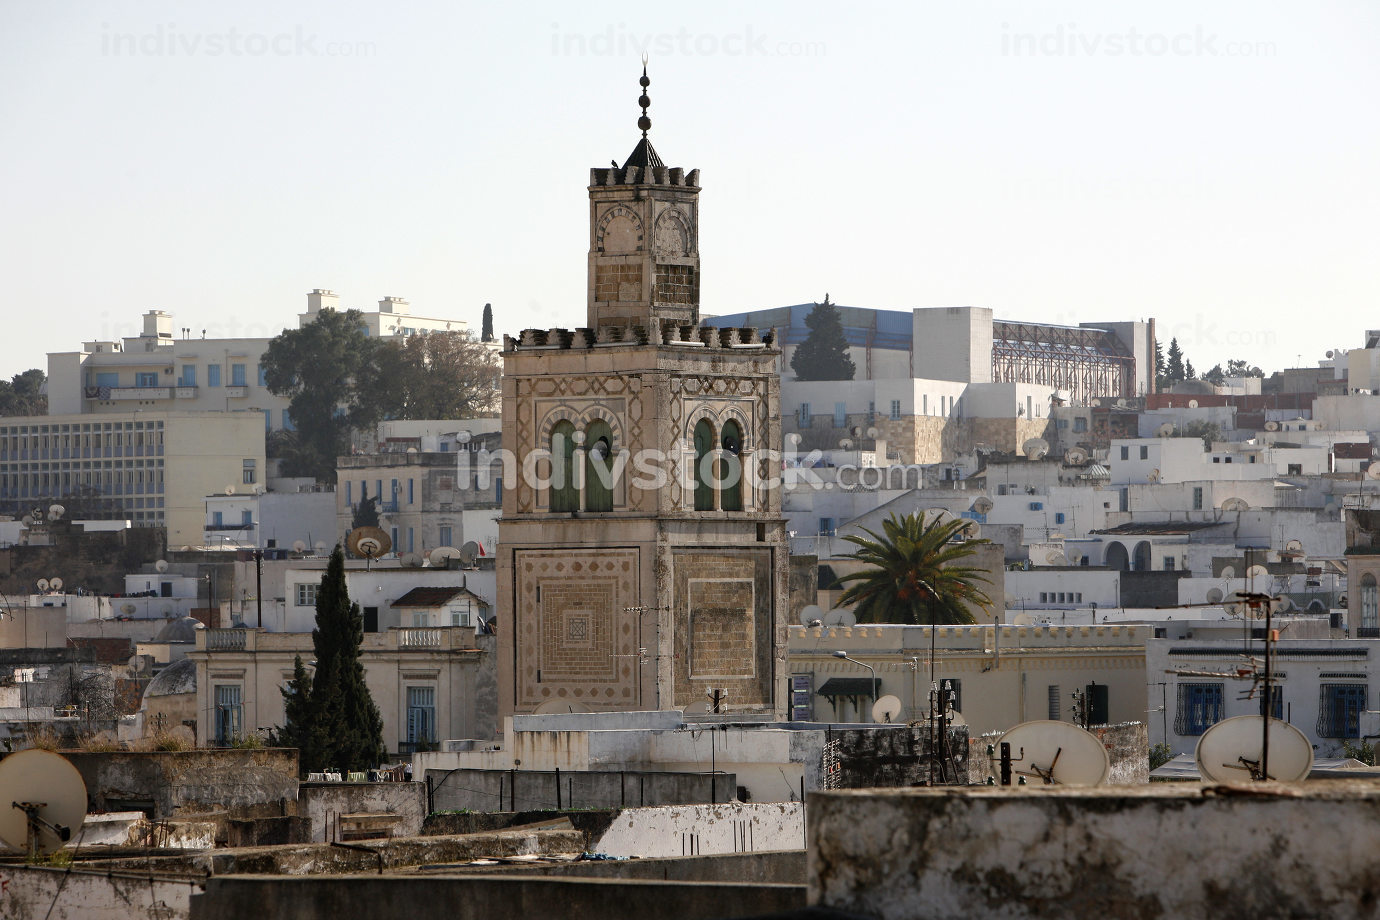 a old Mosque in the Medina of the Old City of Tunis,Tunisia, Sidi Bou Sair, March, 2009